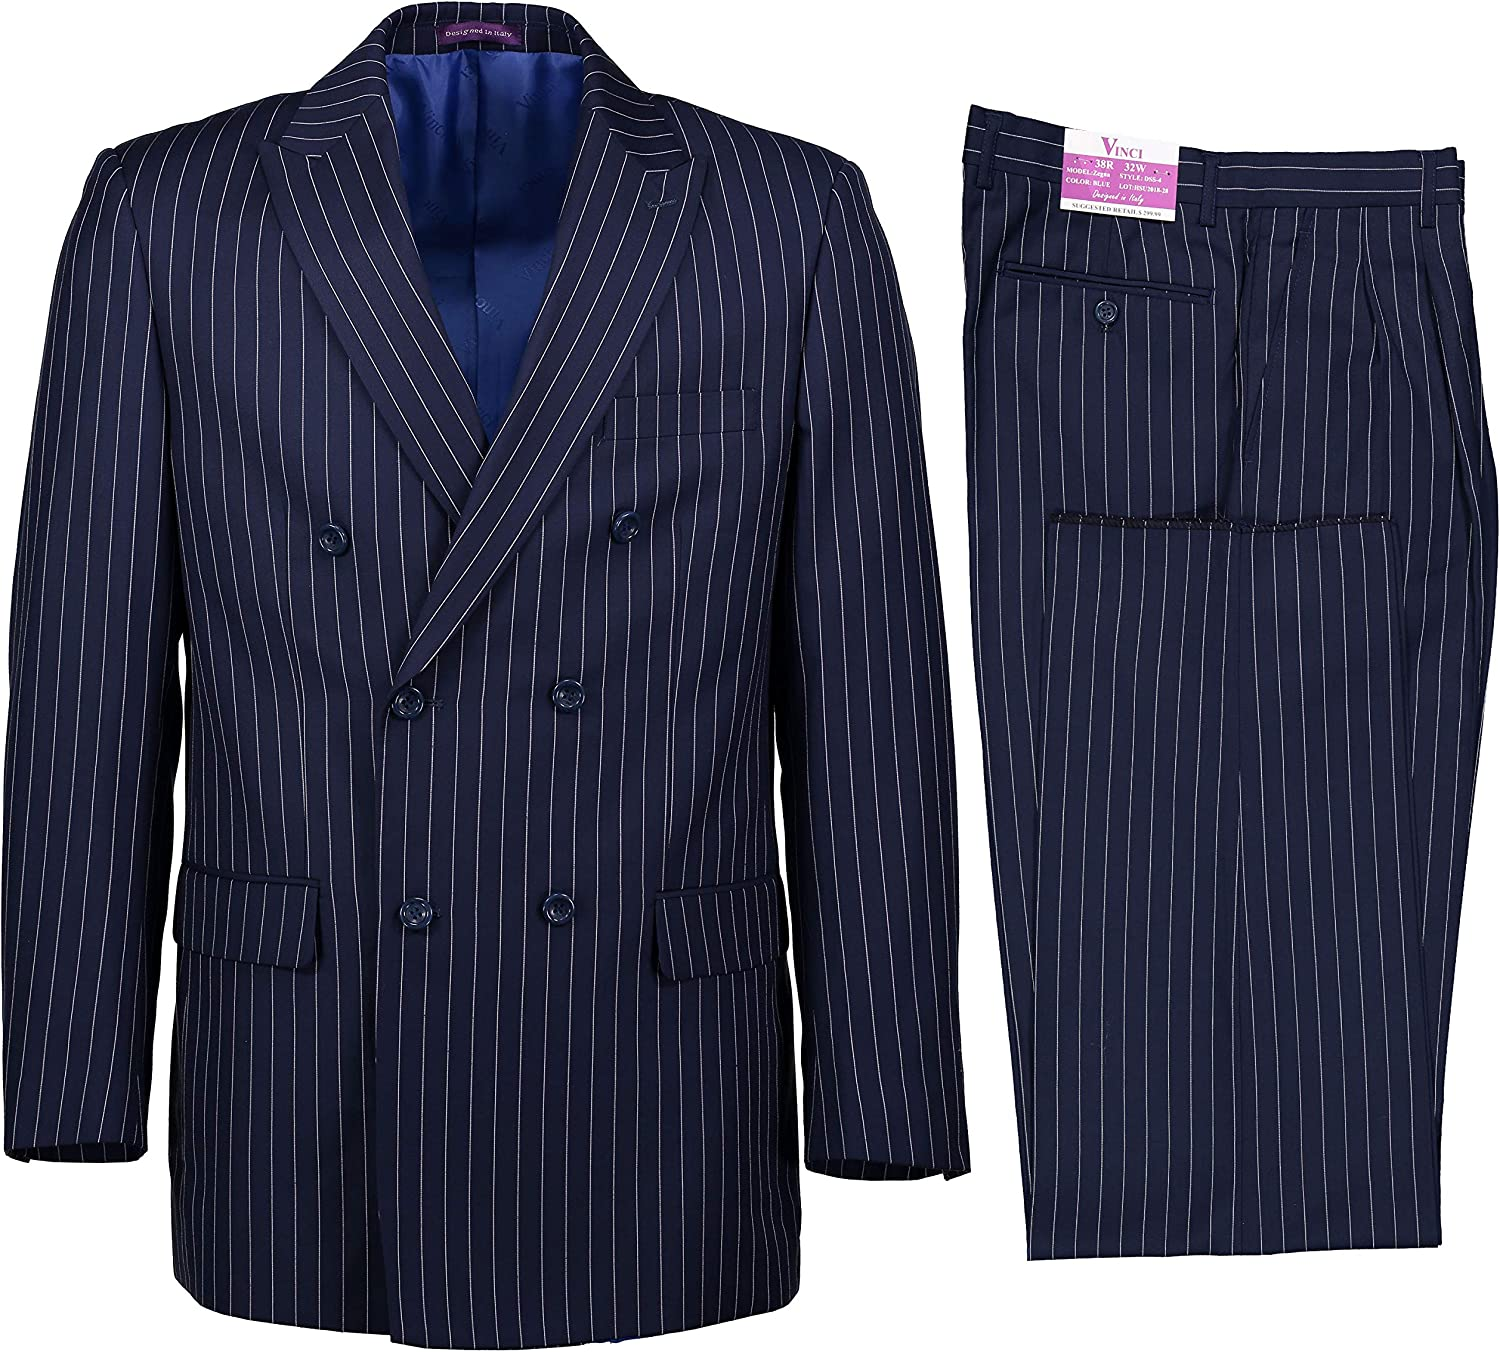 1920s Men's Suits History VINCI Mens Gangster Pinstriped Double Breasted 6 Button Classic Fit Suit New $89.00 AT vintagedancer.com